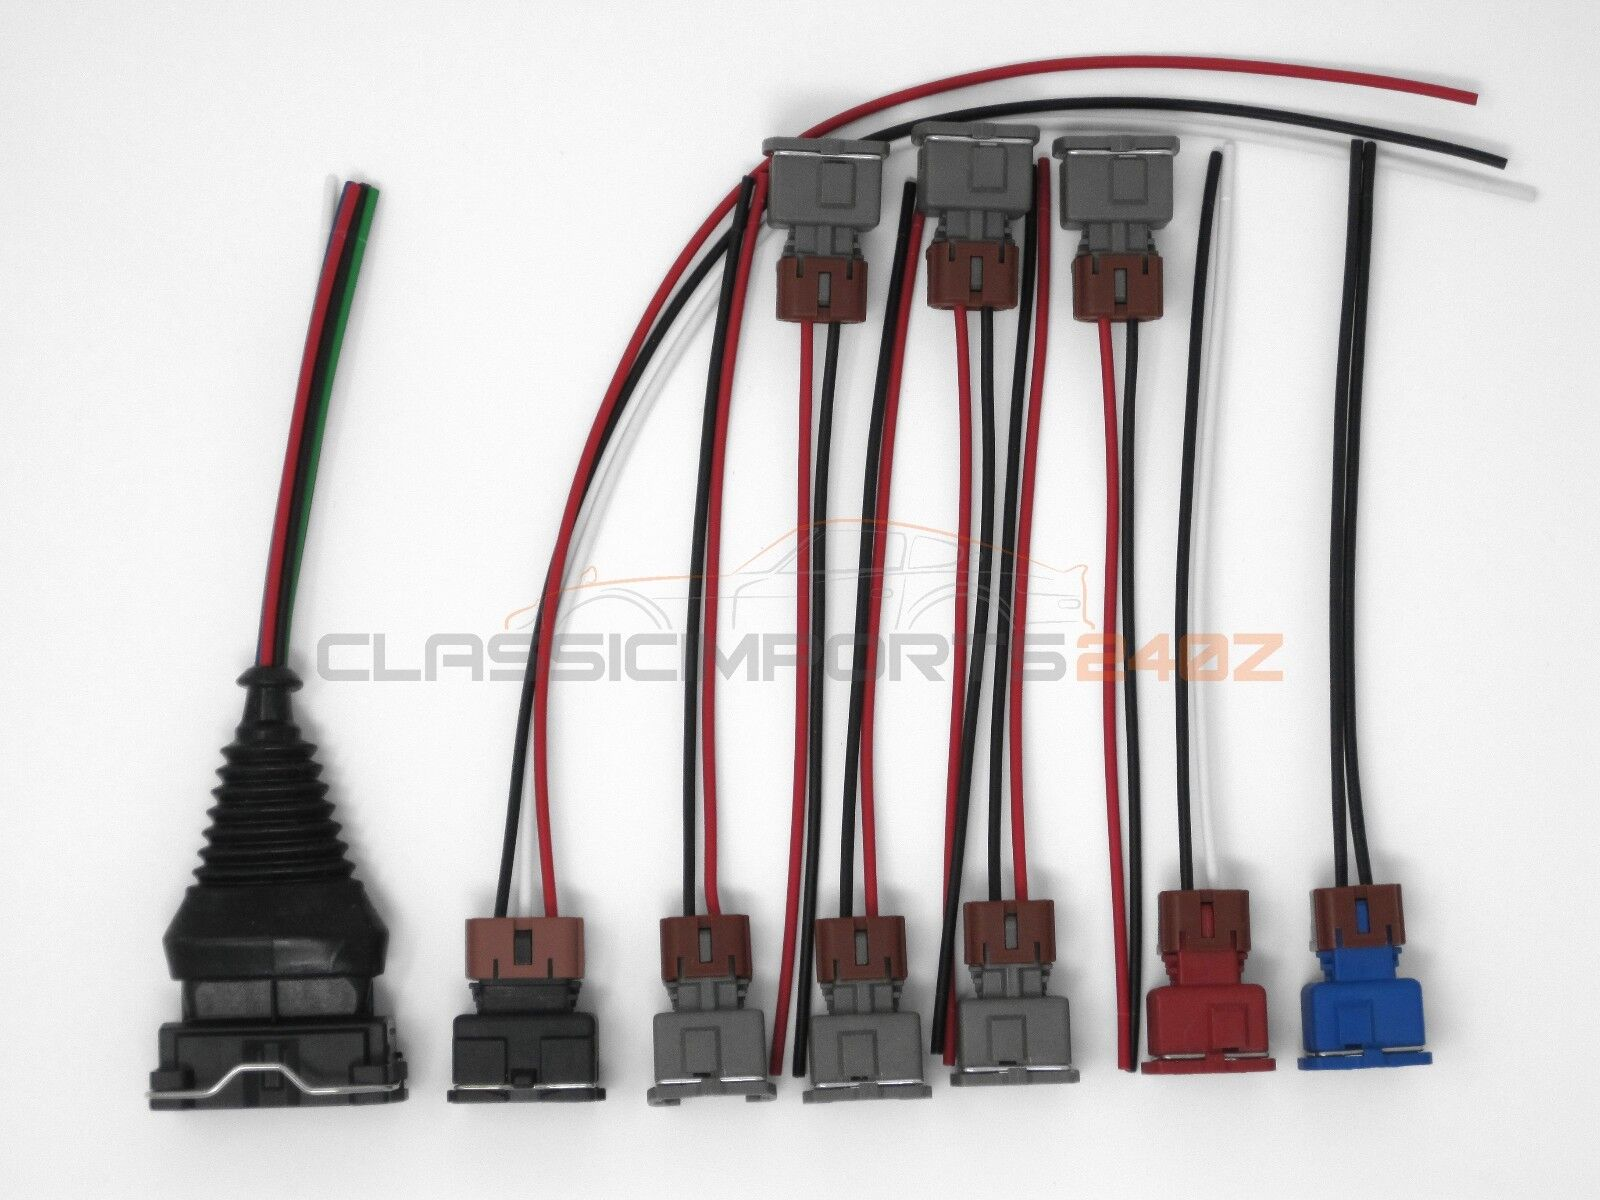 Fuel Injector MAF TPS Wiring Harness Connector Kit for Nissan 300zx on 300zx water pump, 300zx front fender, 300zx fuel filter, 300zx dash kit, 300zx bumpers, 300zx suspension, 300zx blow off valve, 300zx rear caliper, 300zx shifter, 300zx master cylinder, 300zx engine diagram, 300zx crankcase, 300zx fusible link, 300zx trunk cover, 300zx coolant temp sensor, 300zx clutch line, 300zx axles, 300zx dual fuel pump, 300zx engine swap, 300zx decal,